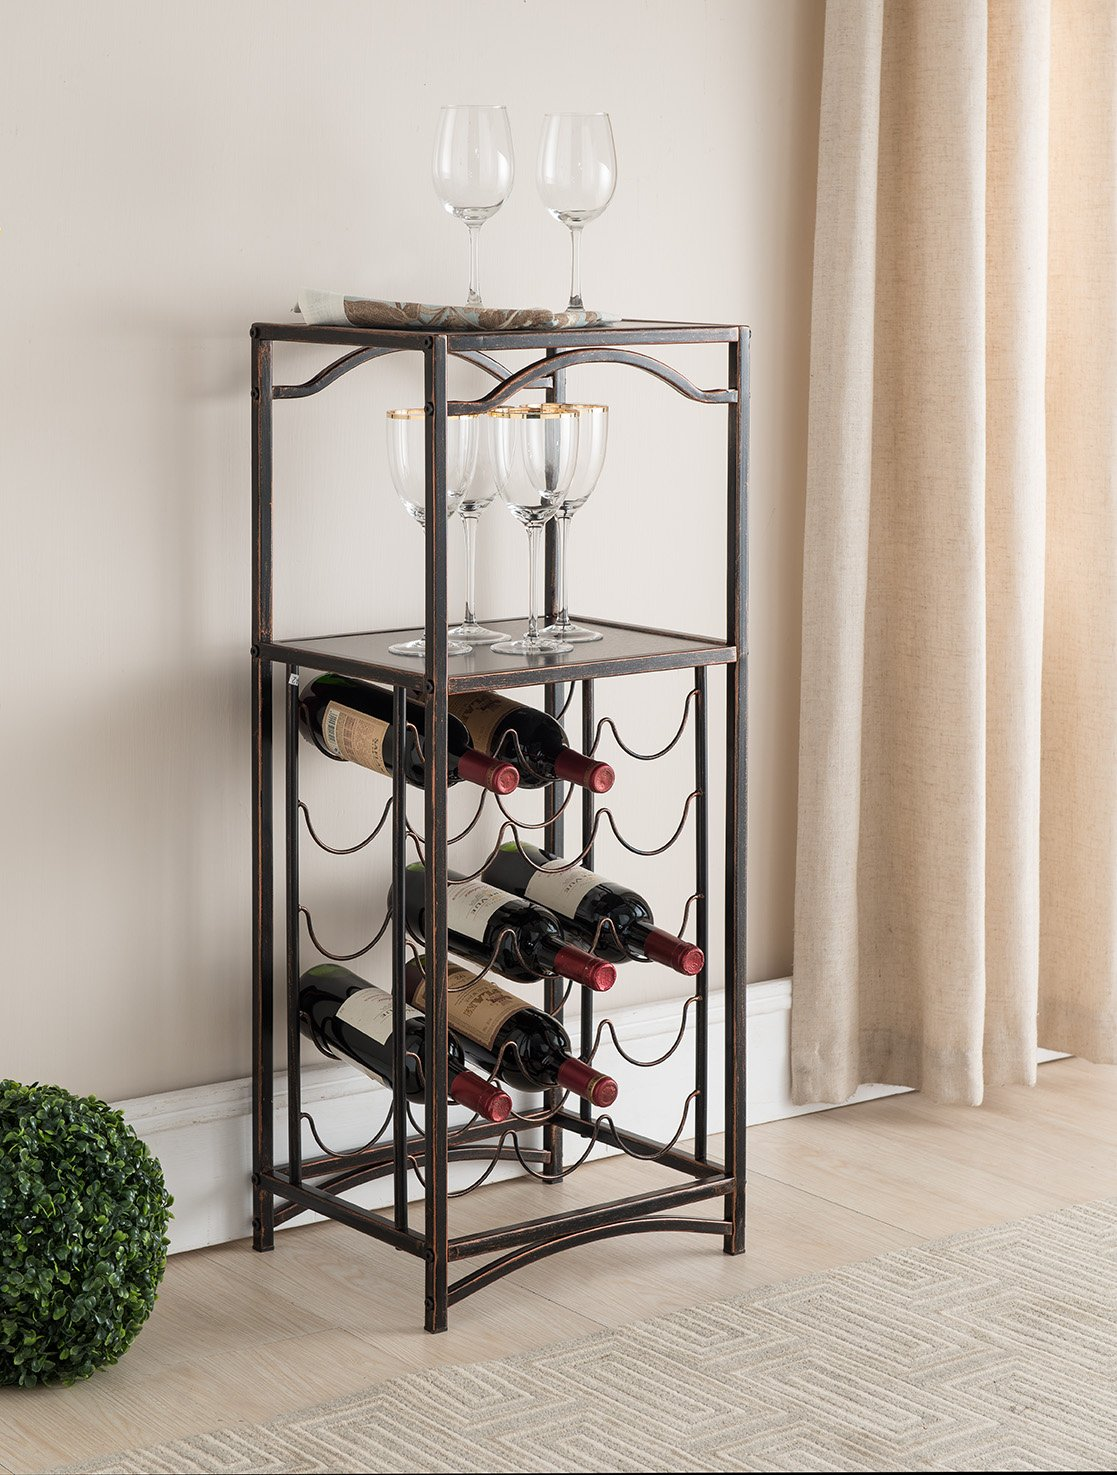 Kings Brand Furniture - Metal 15 Bottle Floor Wine Rack Storage Organizer by Kings Brand Furniture